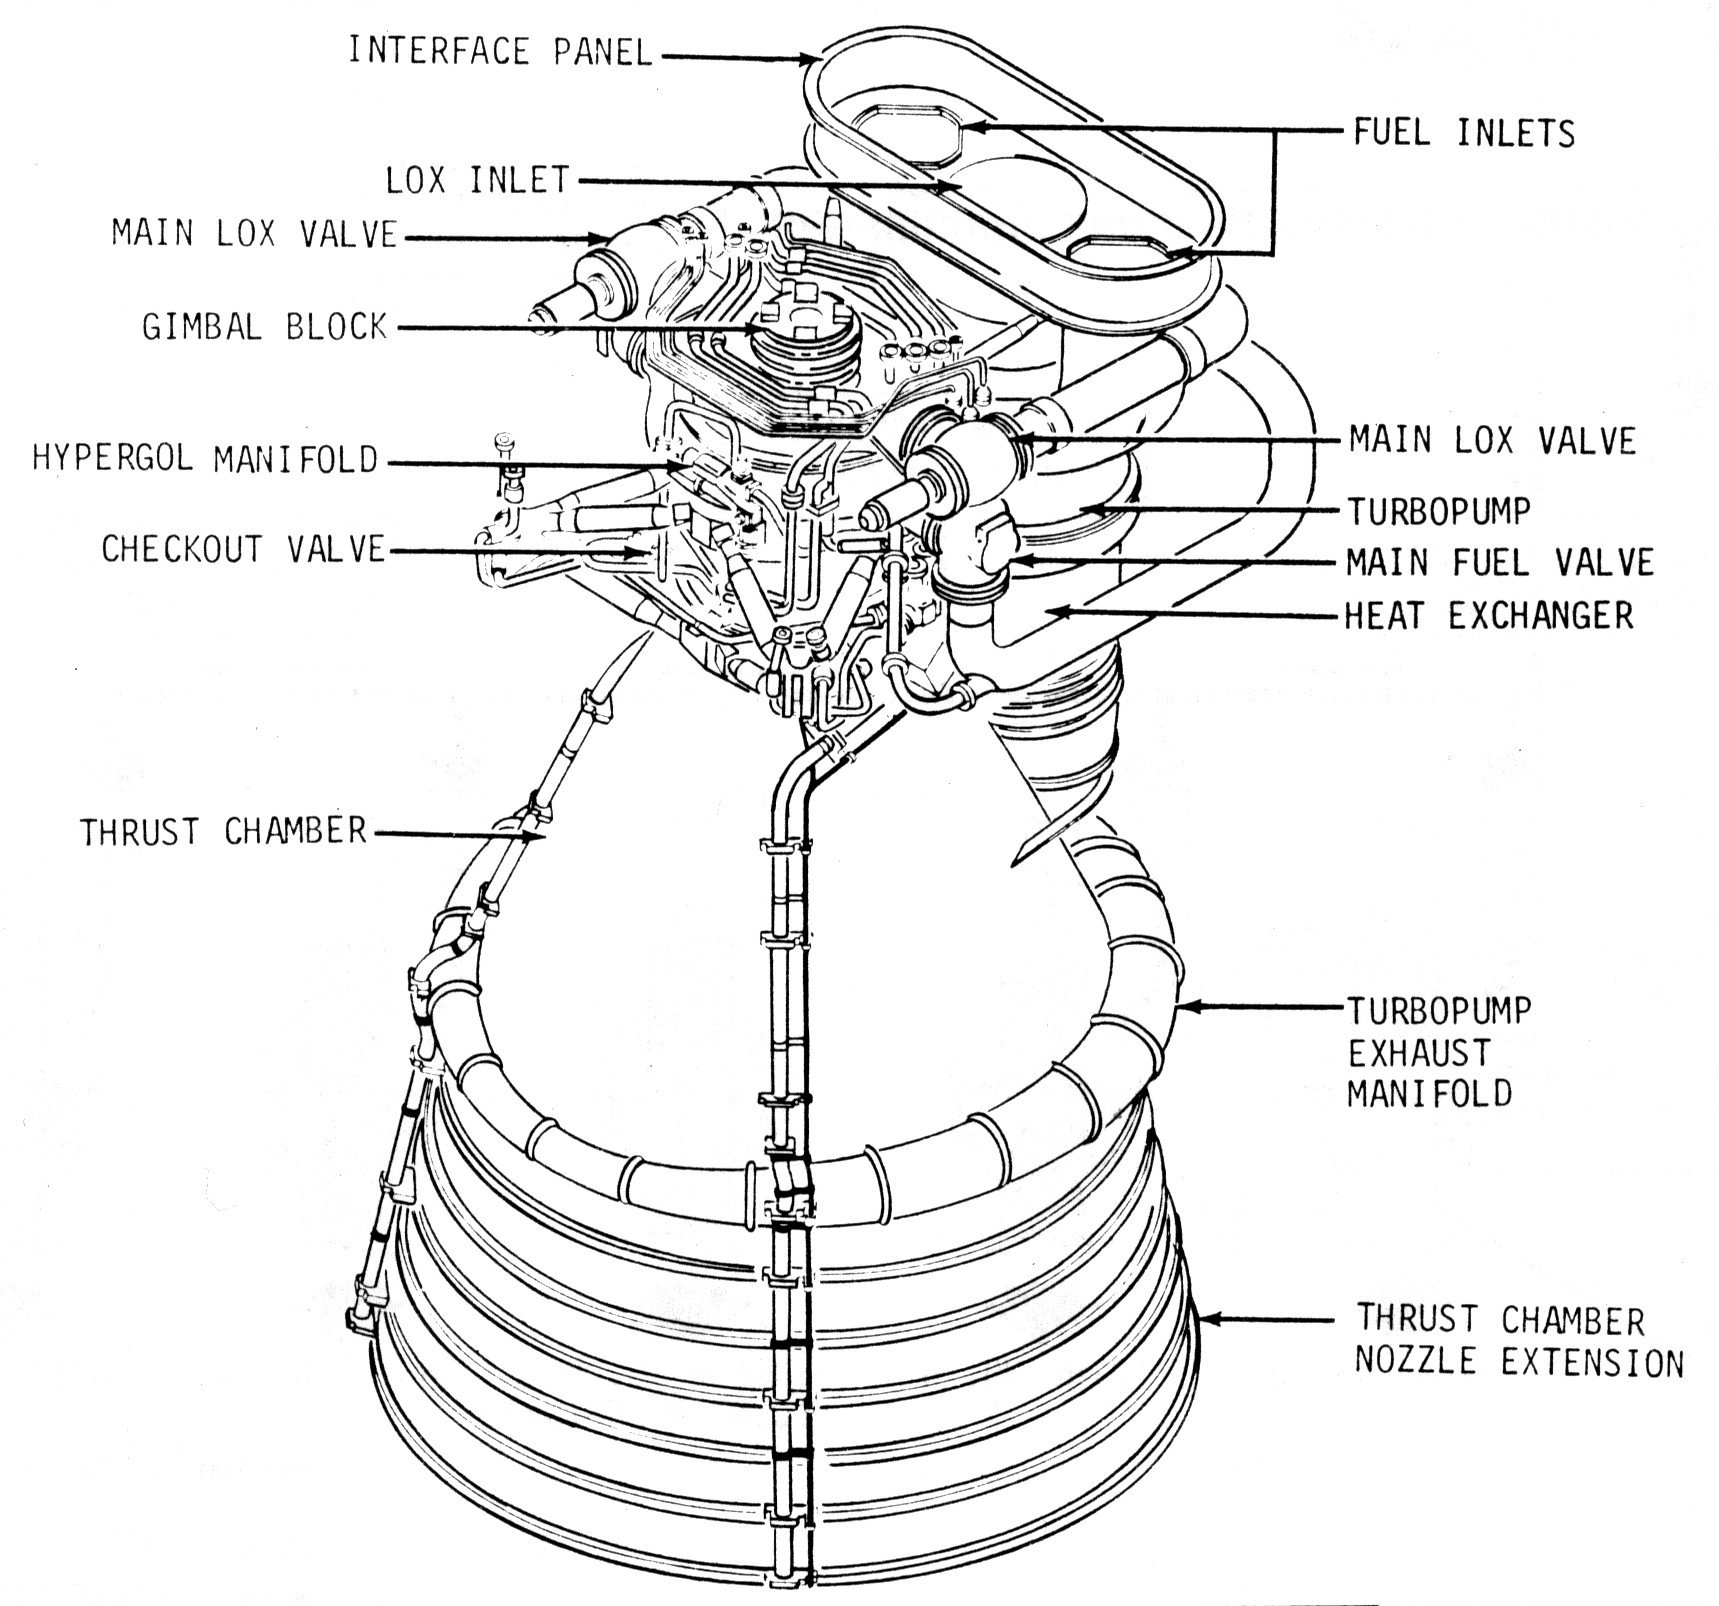 Saturn V Rocket Diagram http://www.talimba.com/index.php?page=search/images&search=saturn+v+rocket+diagram